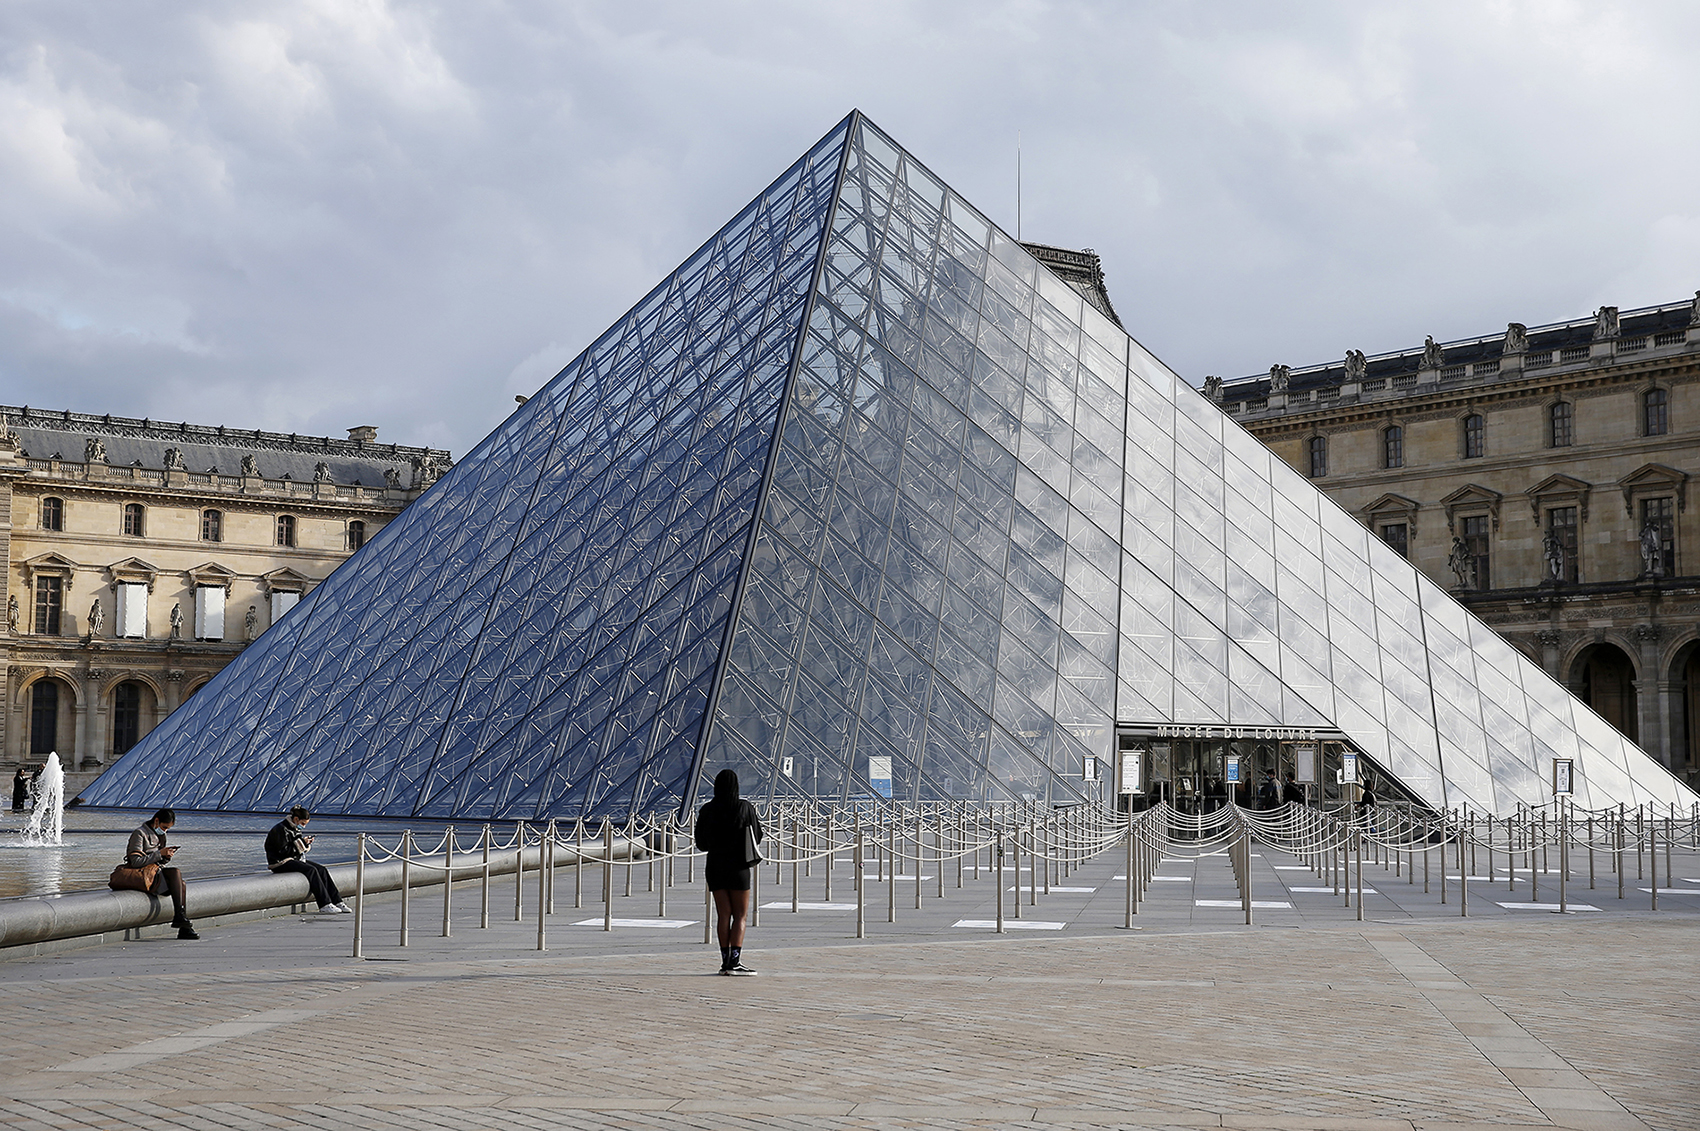 The almost empty courtyard of the Louvre museum and the pyramid of Louvre are seen without tourists on October 14, 2020 in Paris